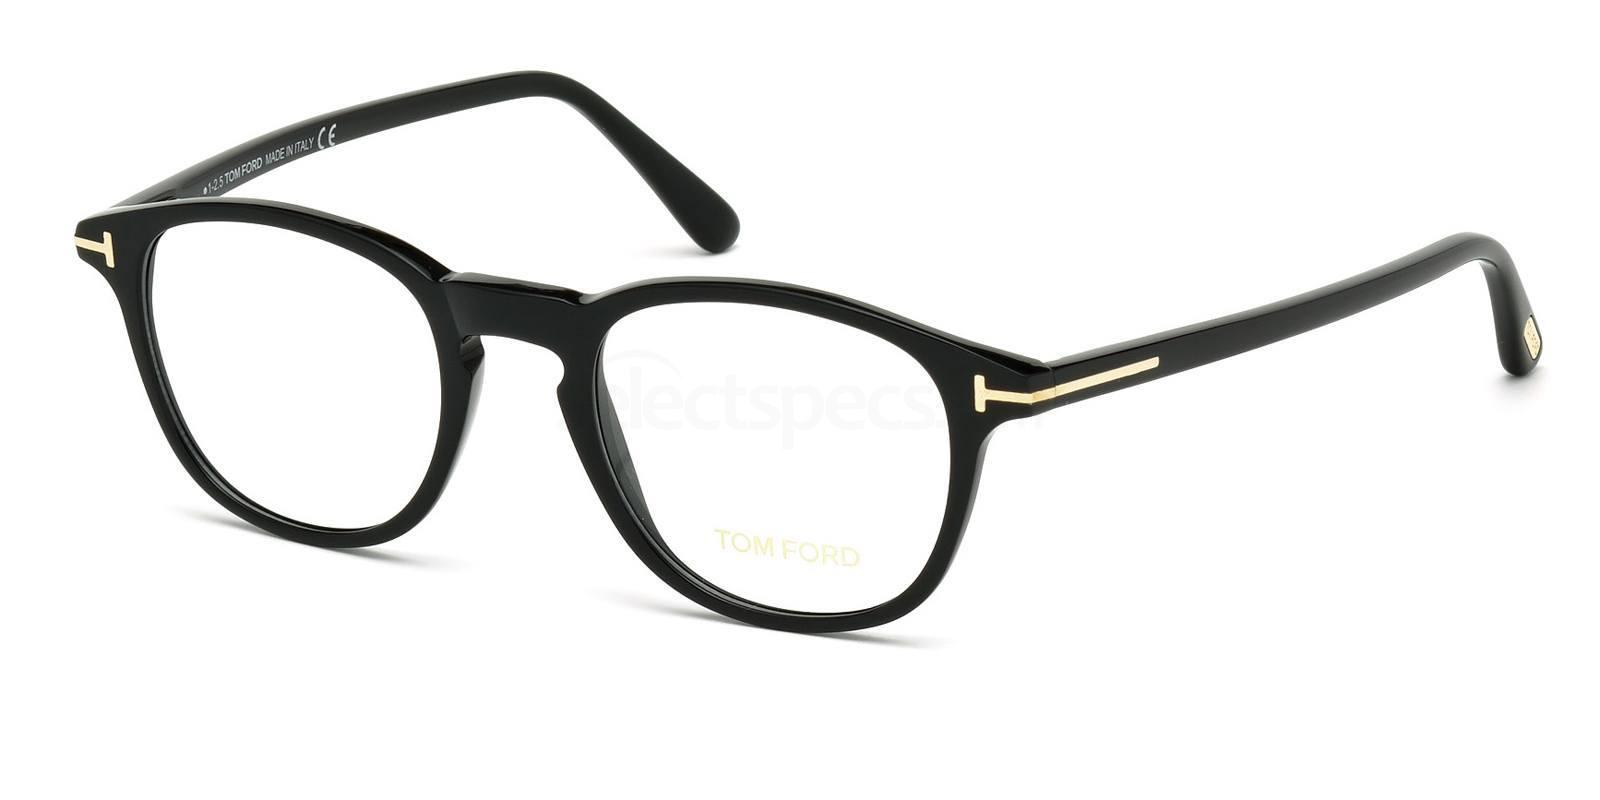 001 FT5389 Glasses, Tom Ford